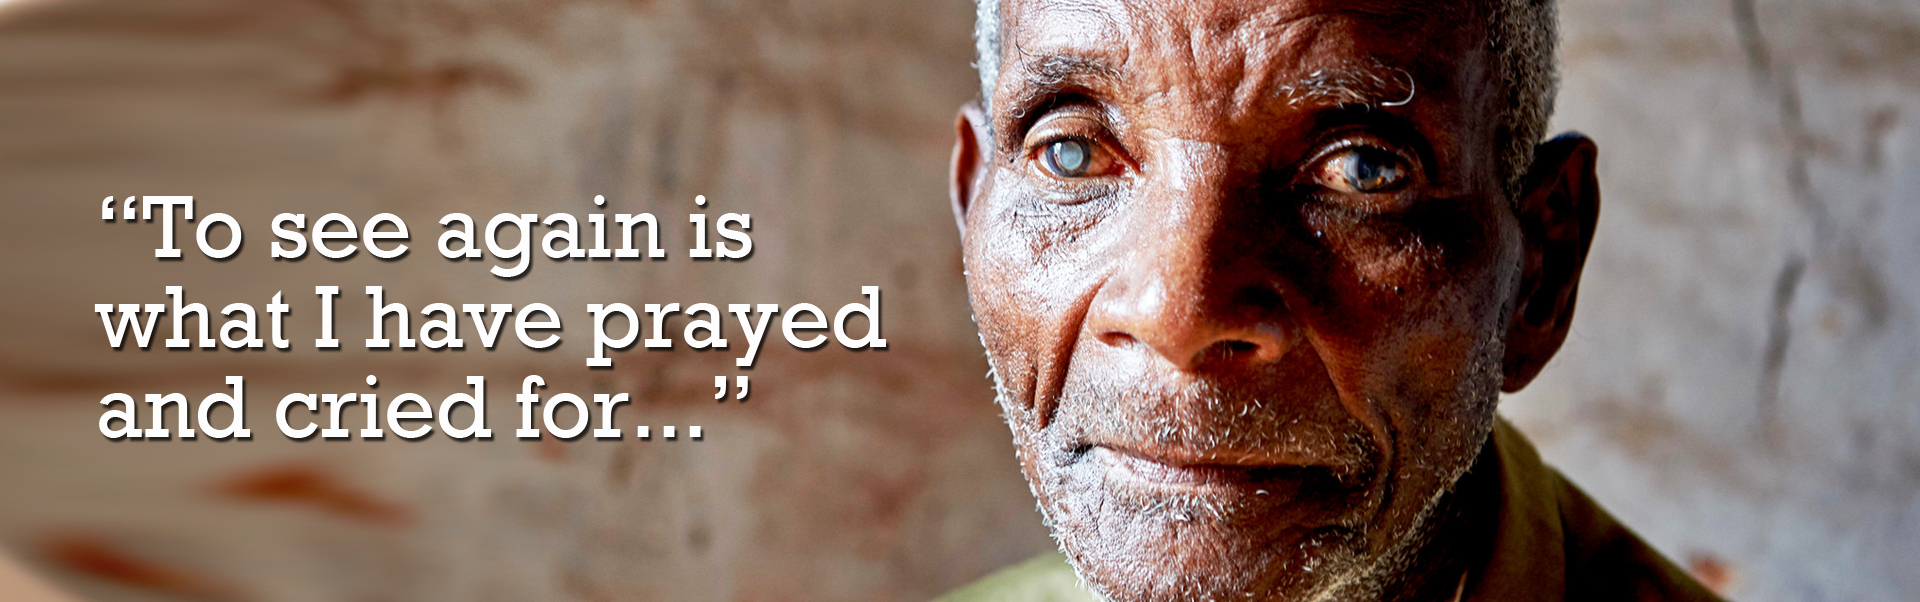 Patrick lost his sight to cataracts. You can be the answer to his prayer.